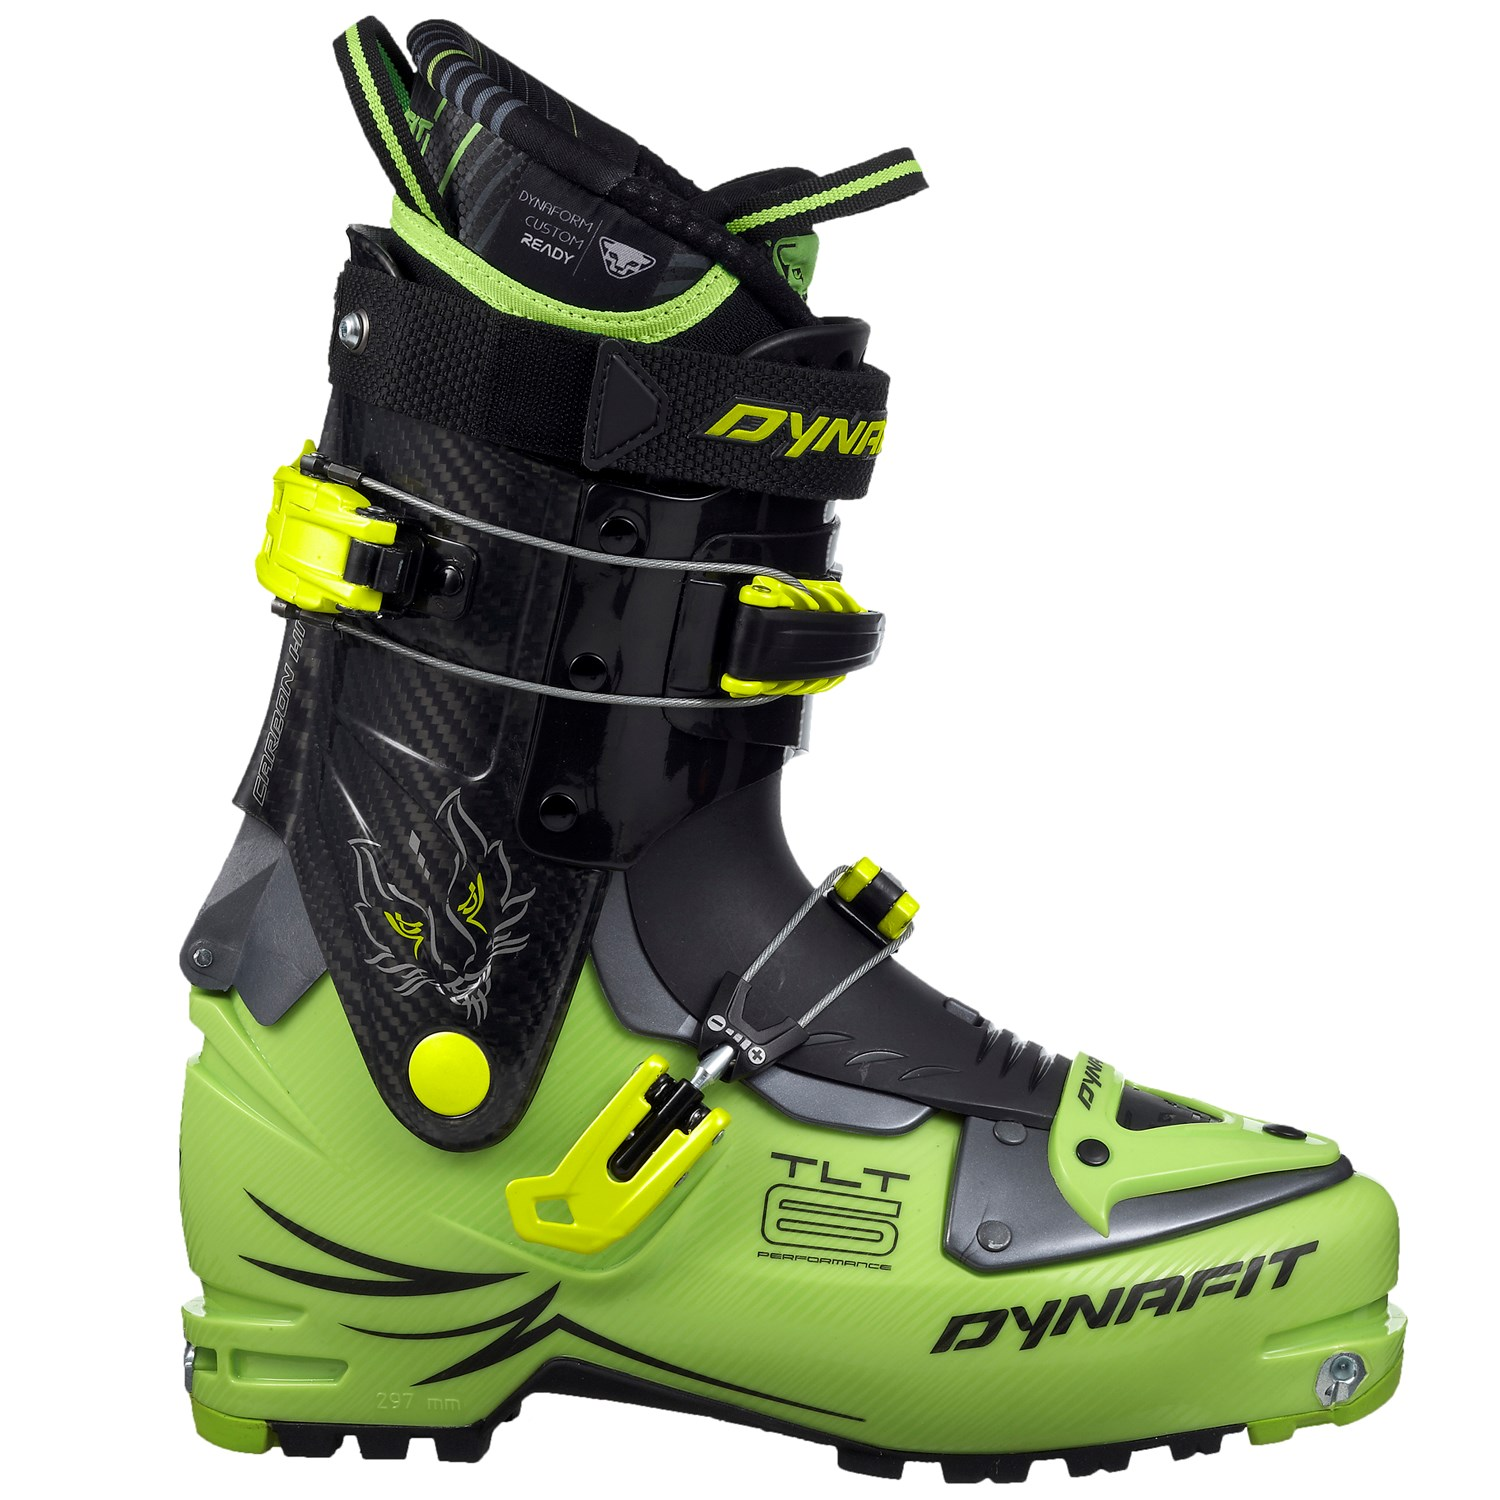 Image result for Dynafit Ski Boots